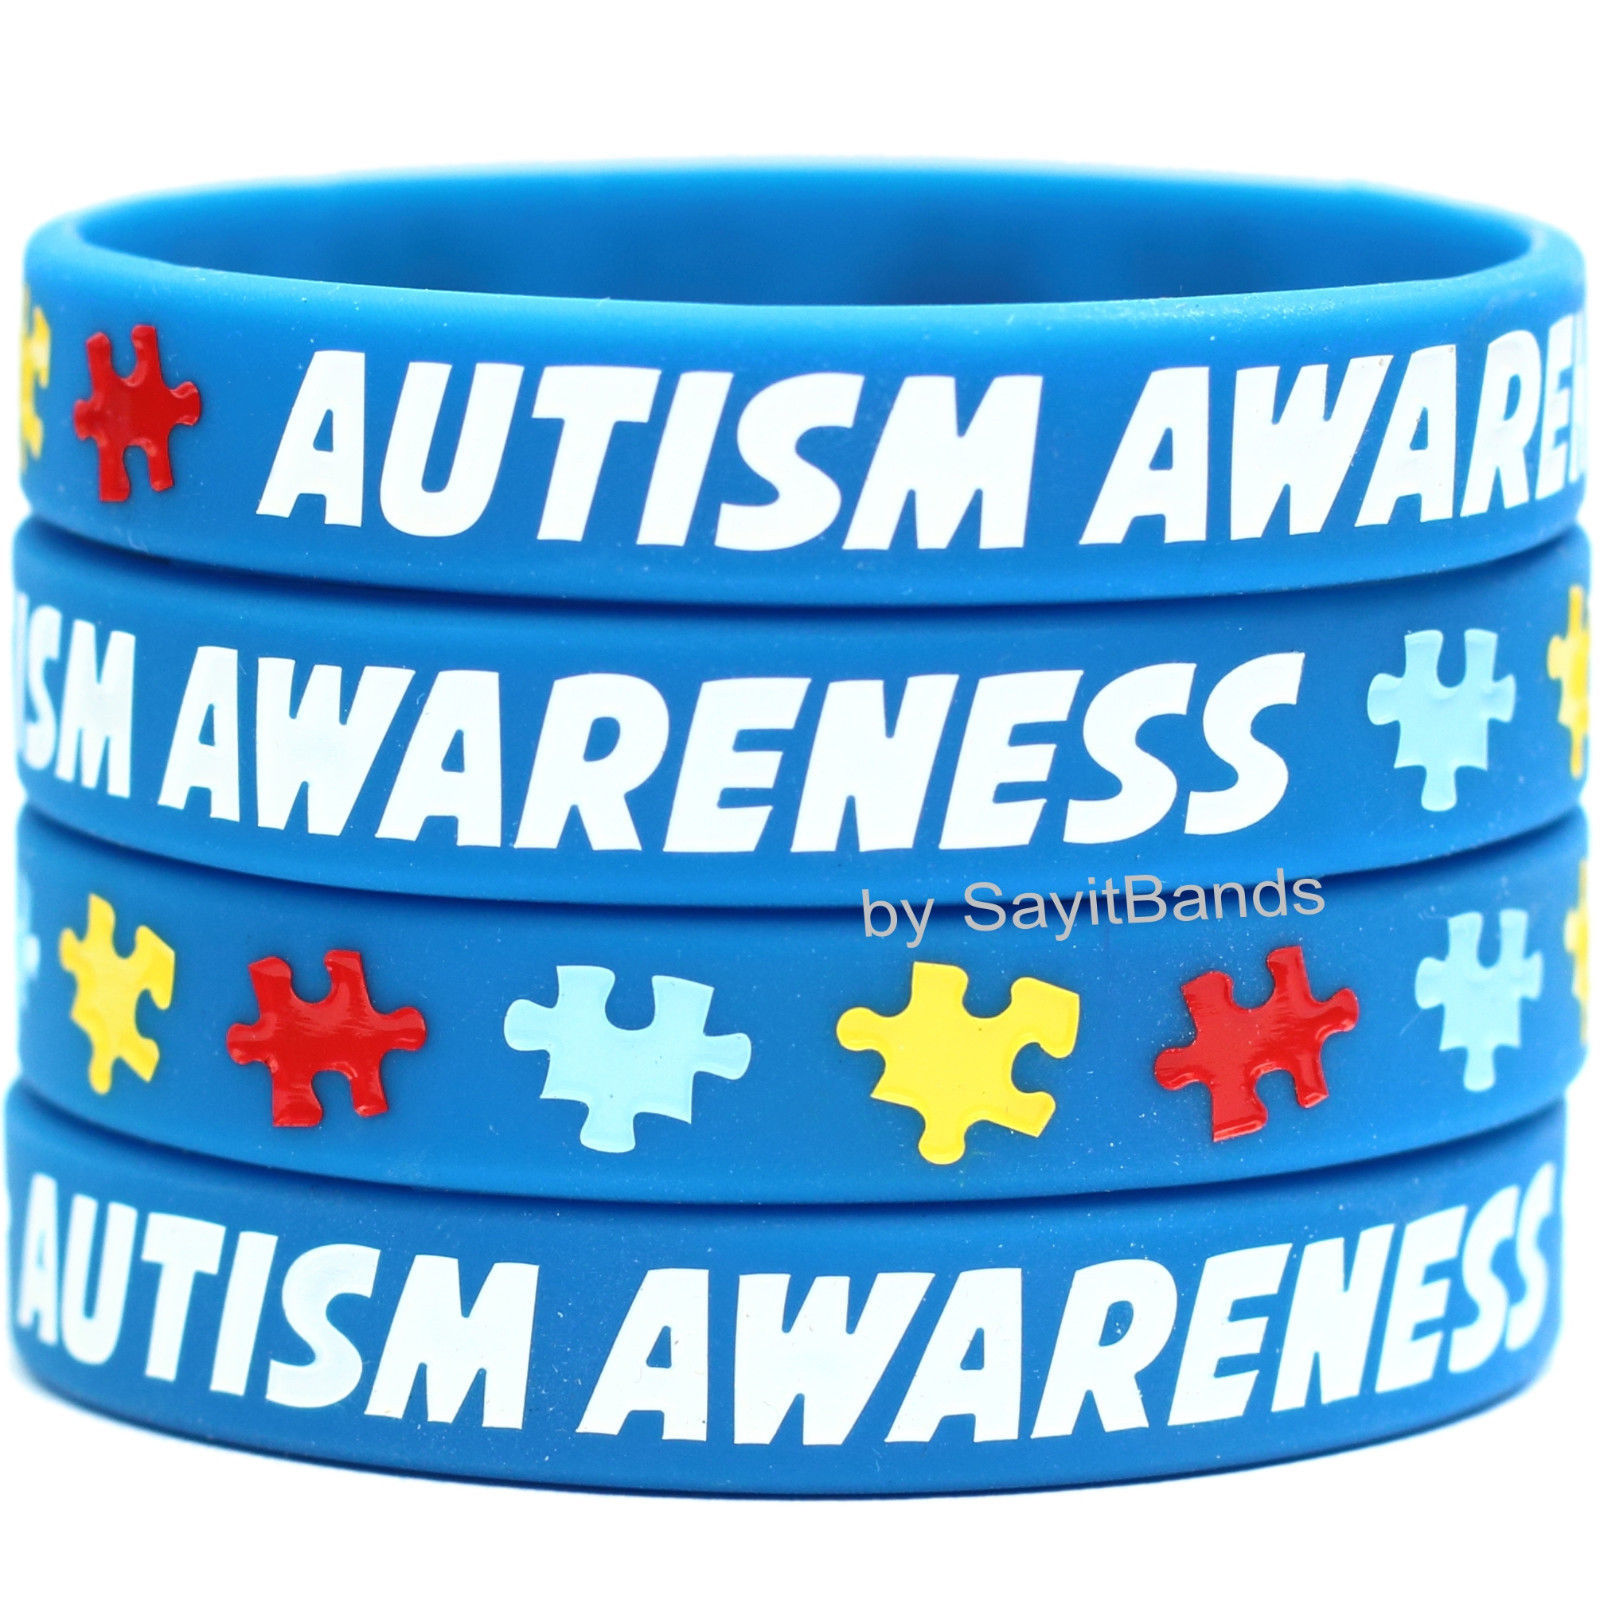 Primary image for Set of 5 Austism Awareness Wristbands - Silicone Bracelets Bands - Show Support